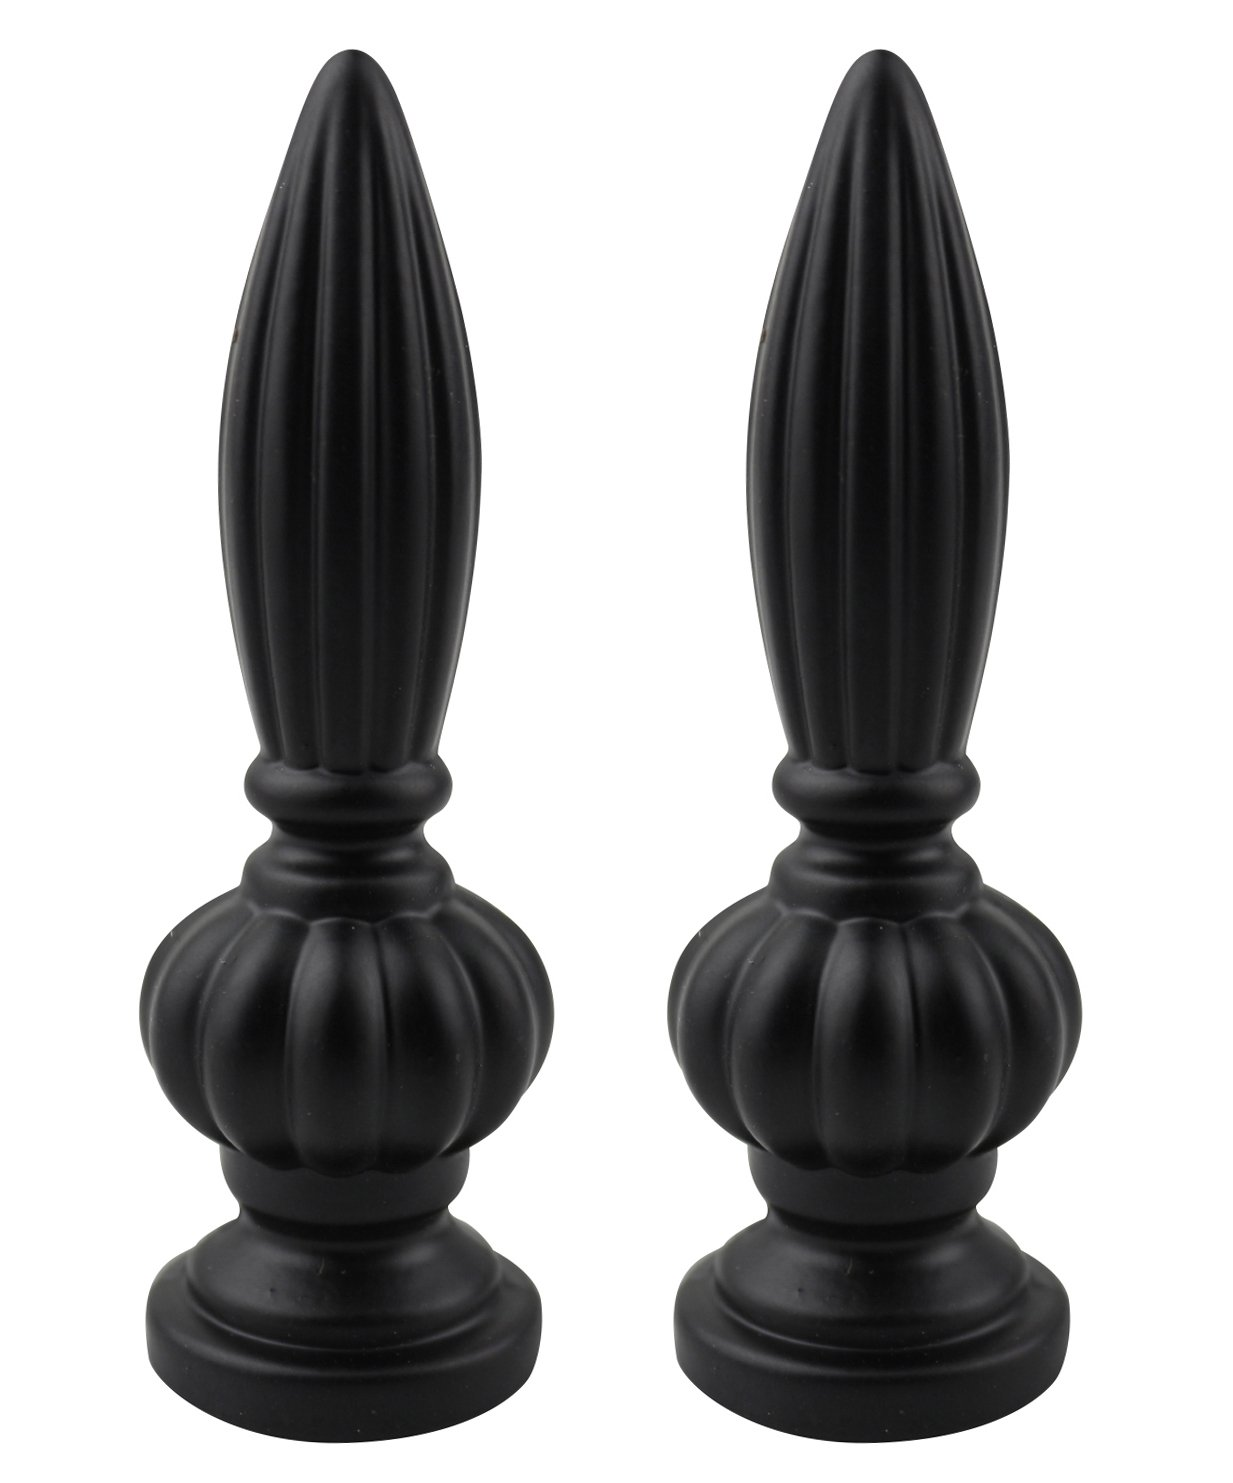 Urbanest Set of 2 Agnes Lamp Finial, 3 1/16-inch Tall, Matte Black